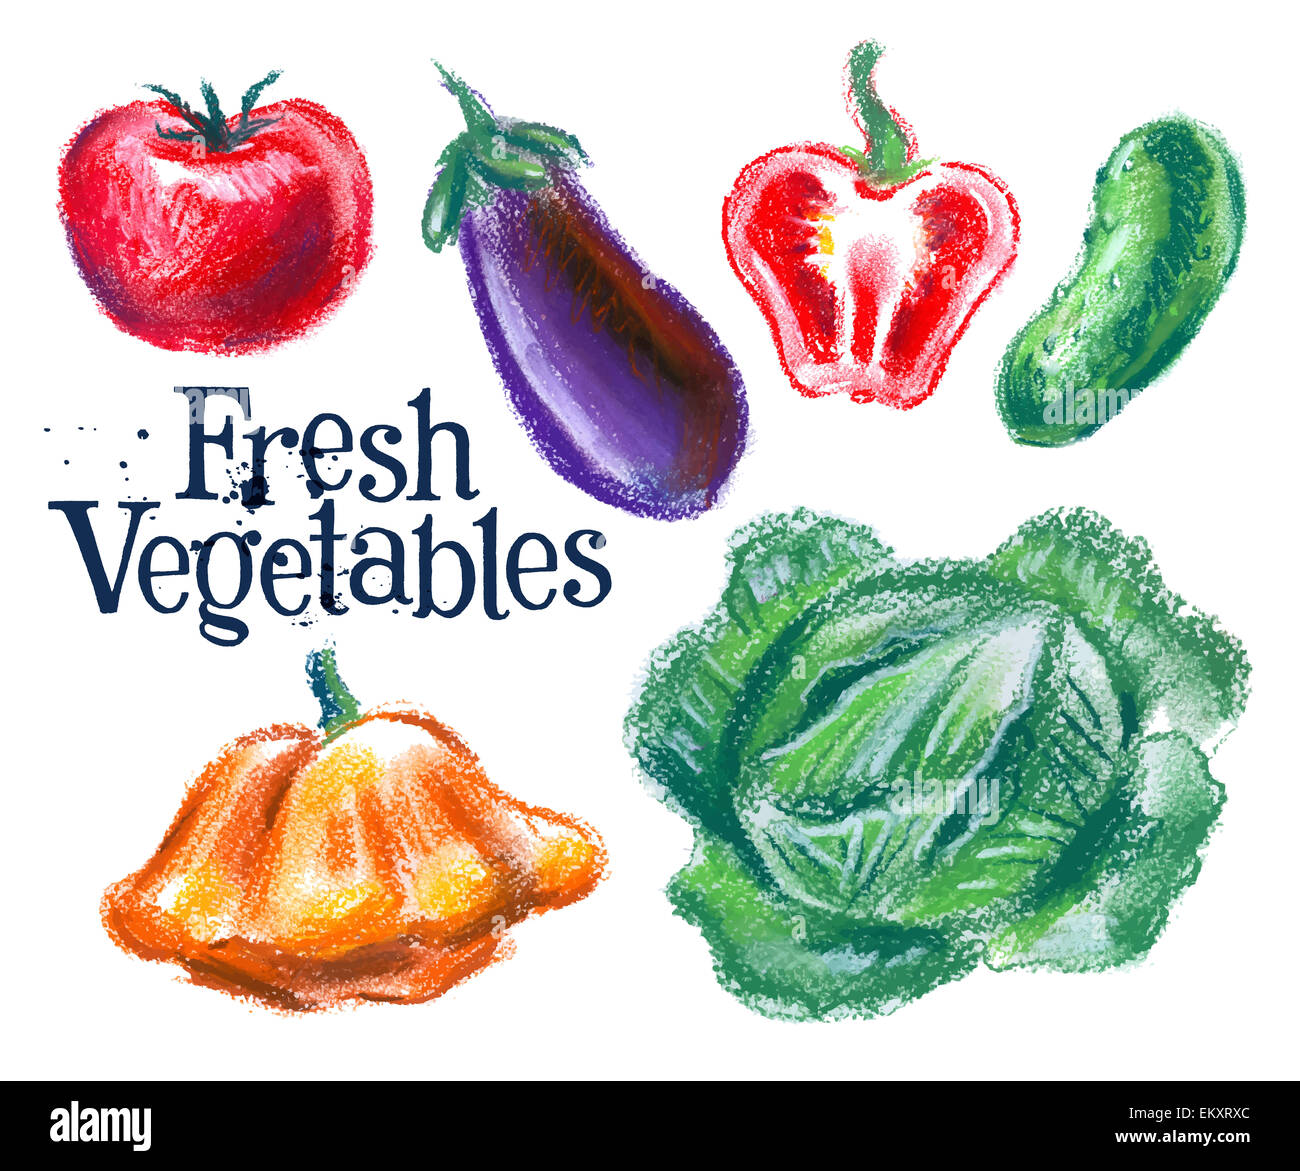 Eggplant Sketch Stockfotos & Eggplant Sketch Bilder - Alamy